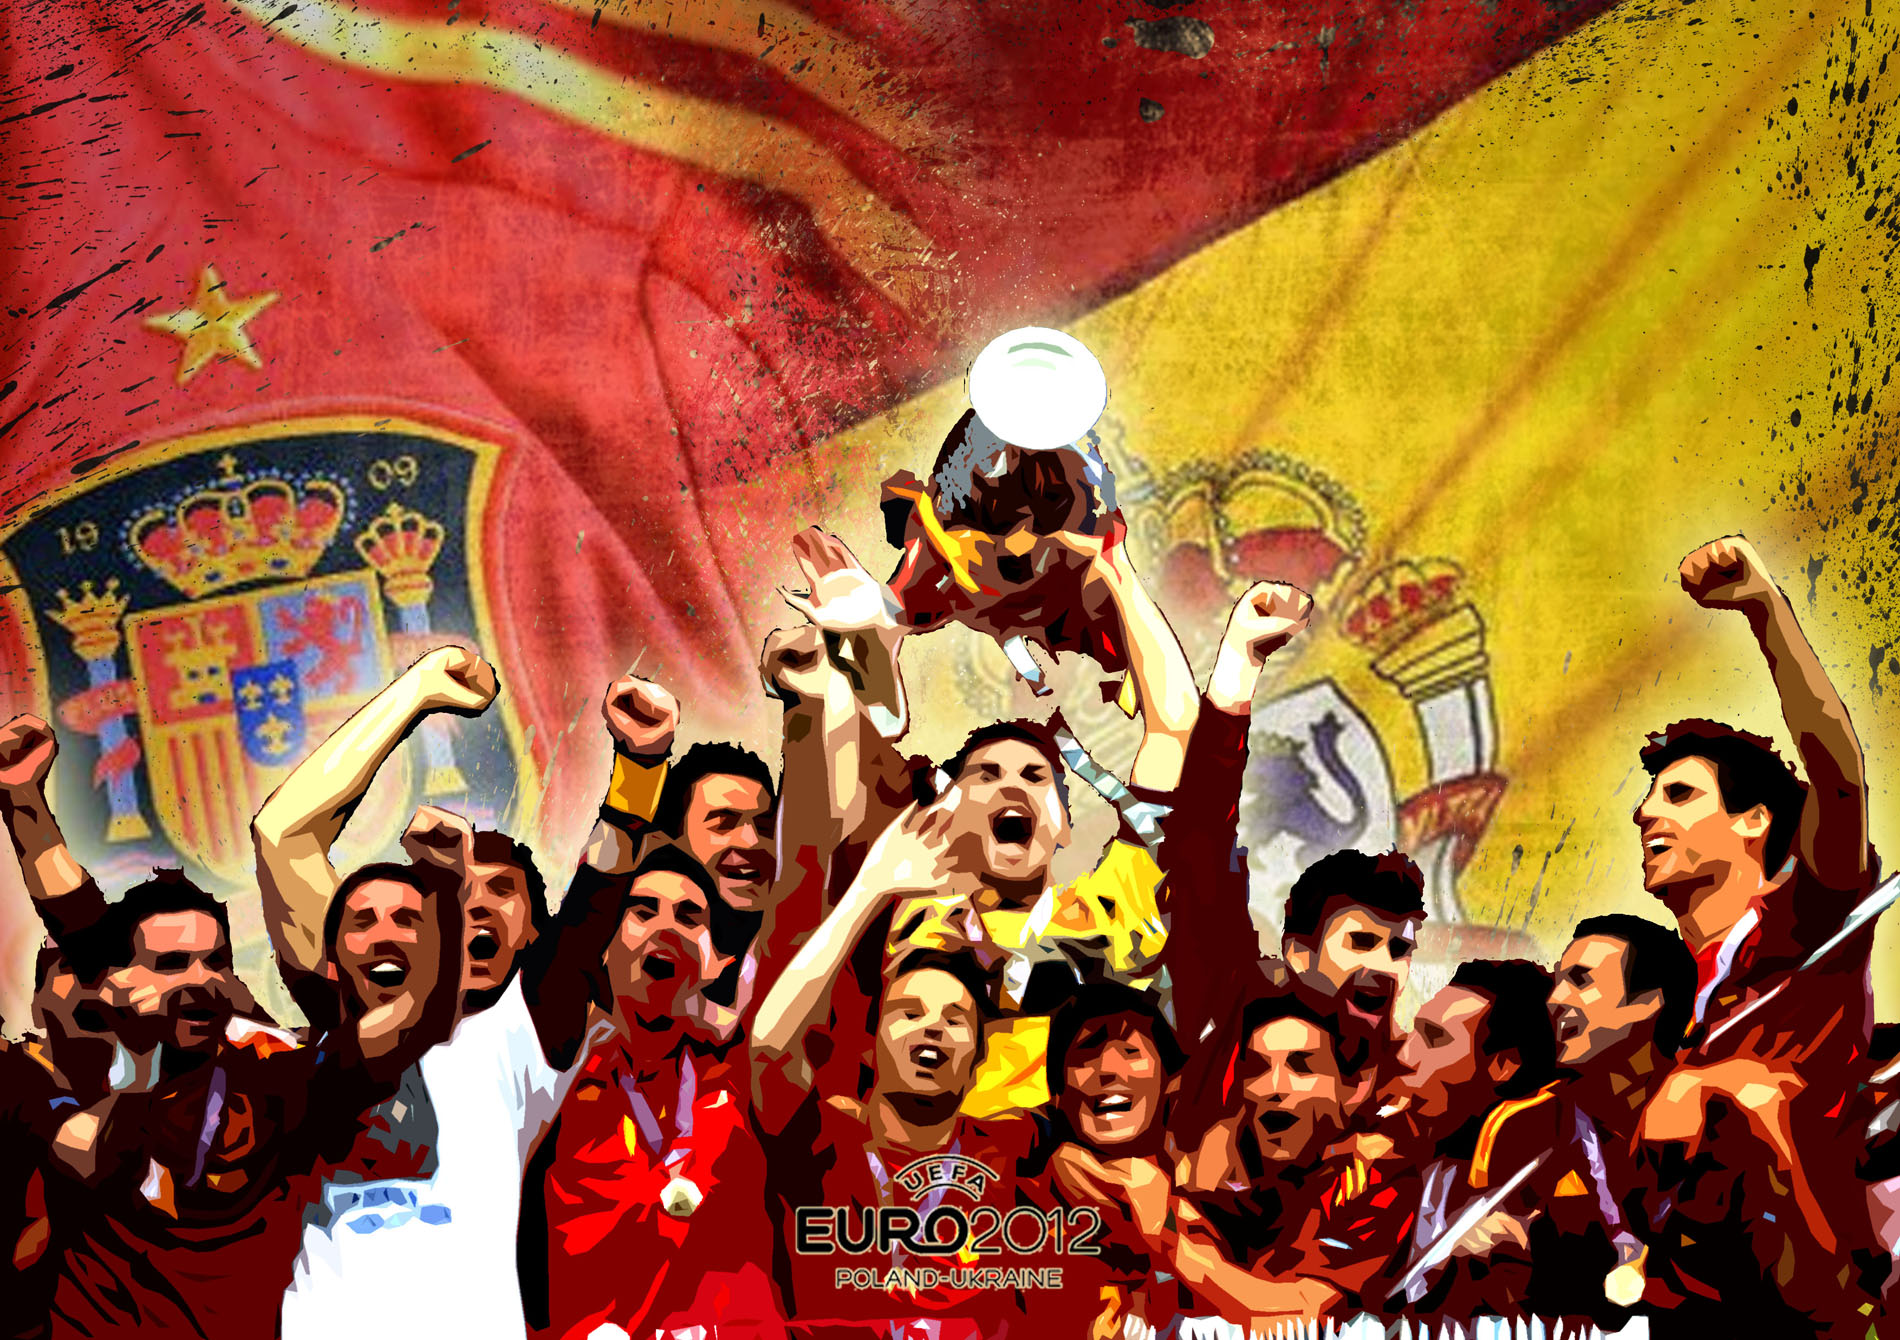 Spain Football Wallpaper Backgrounds and Picture 1900x1340